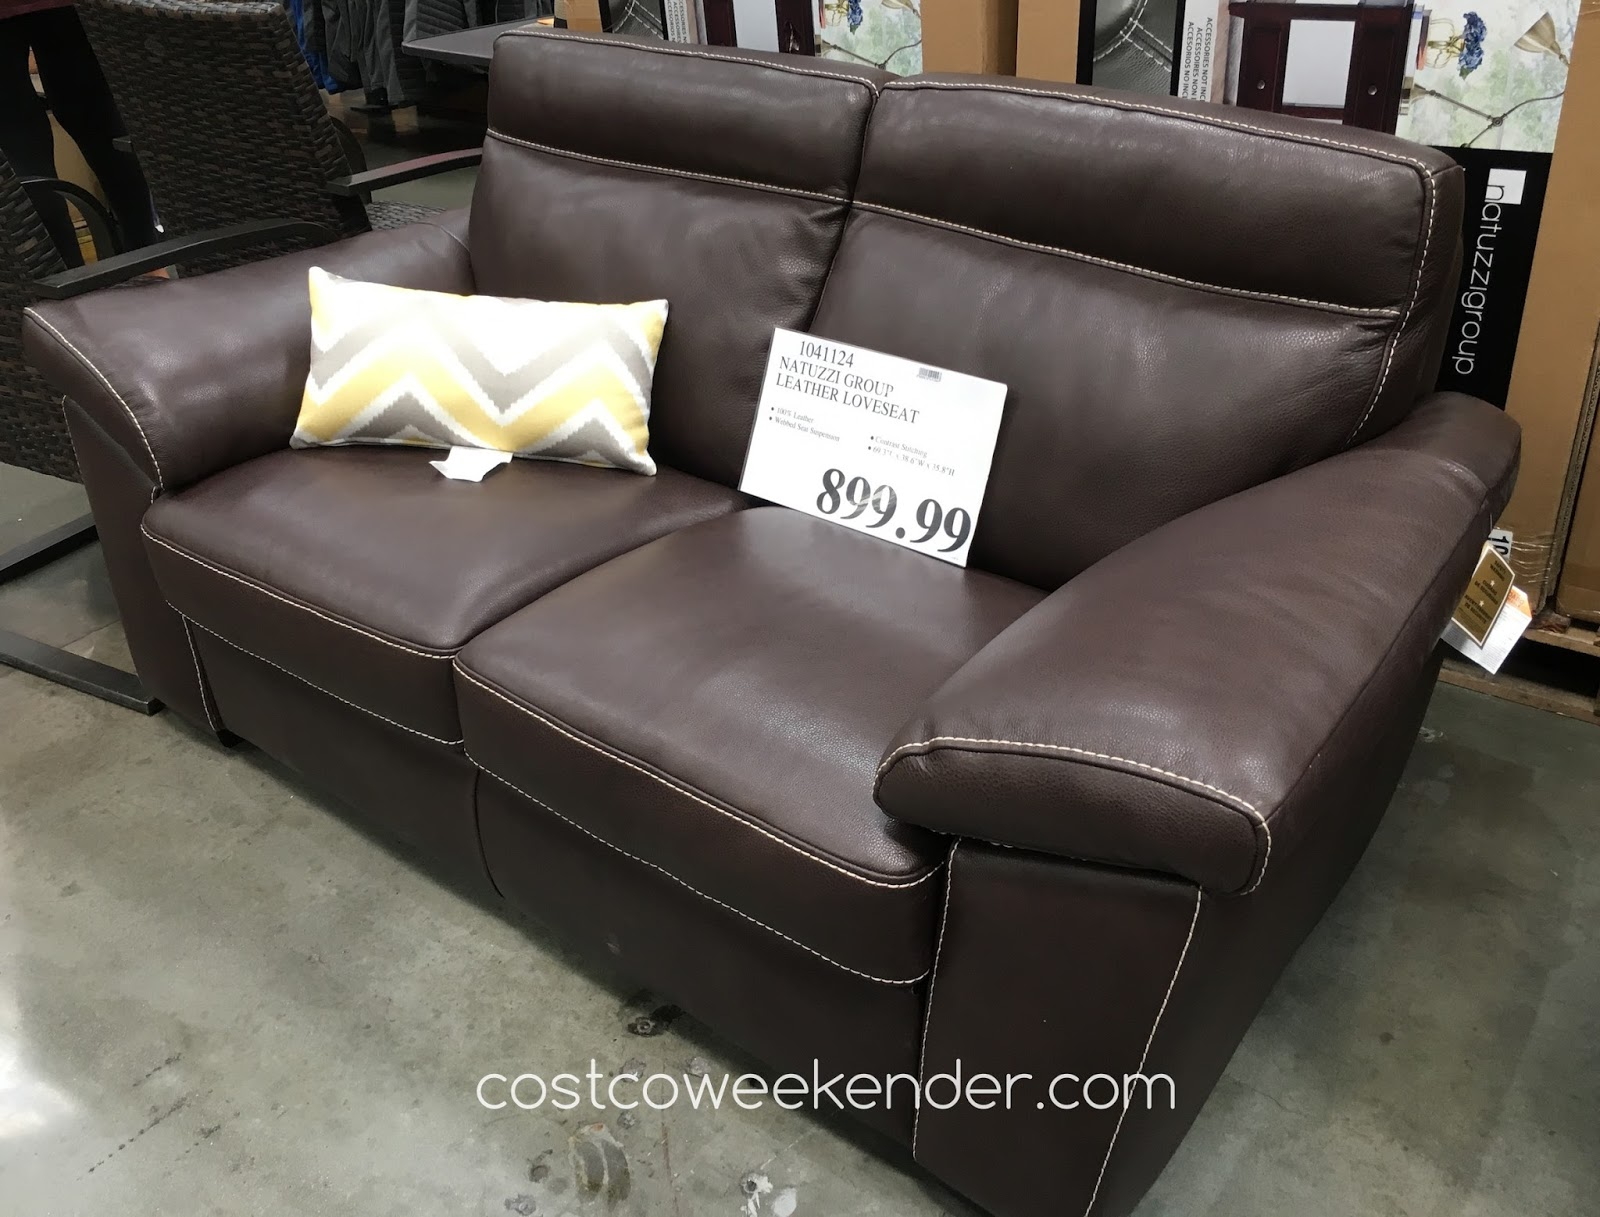 Natuzzi Group Leather Loveseat Costco Weekender